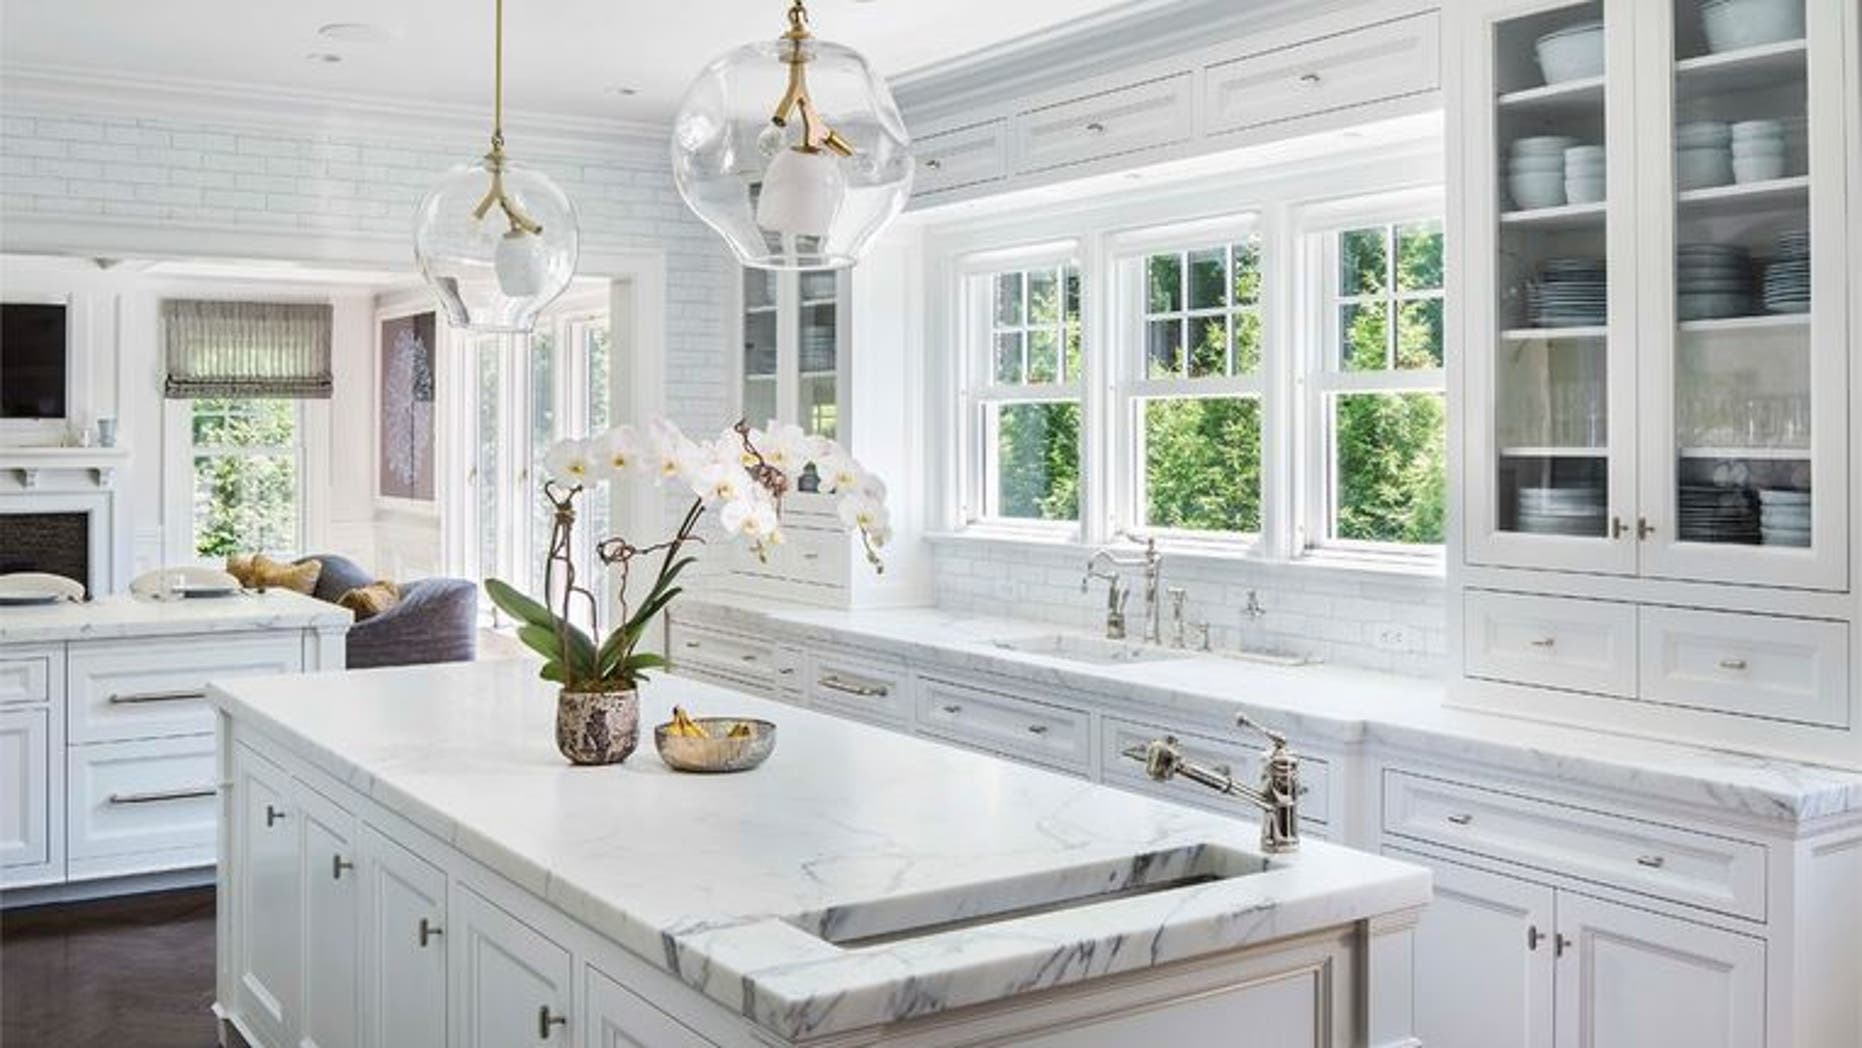 8 must-know techniques for keeping your kitchen cabinets sparkling clean